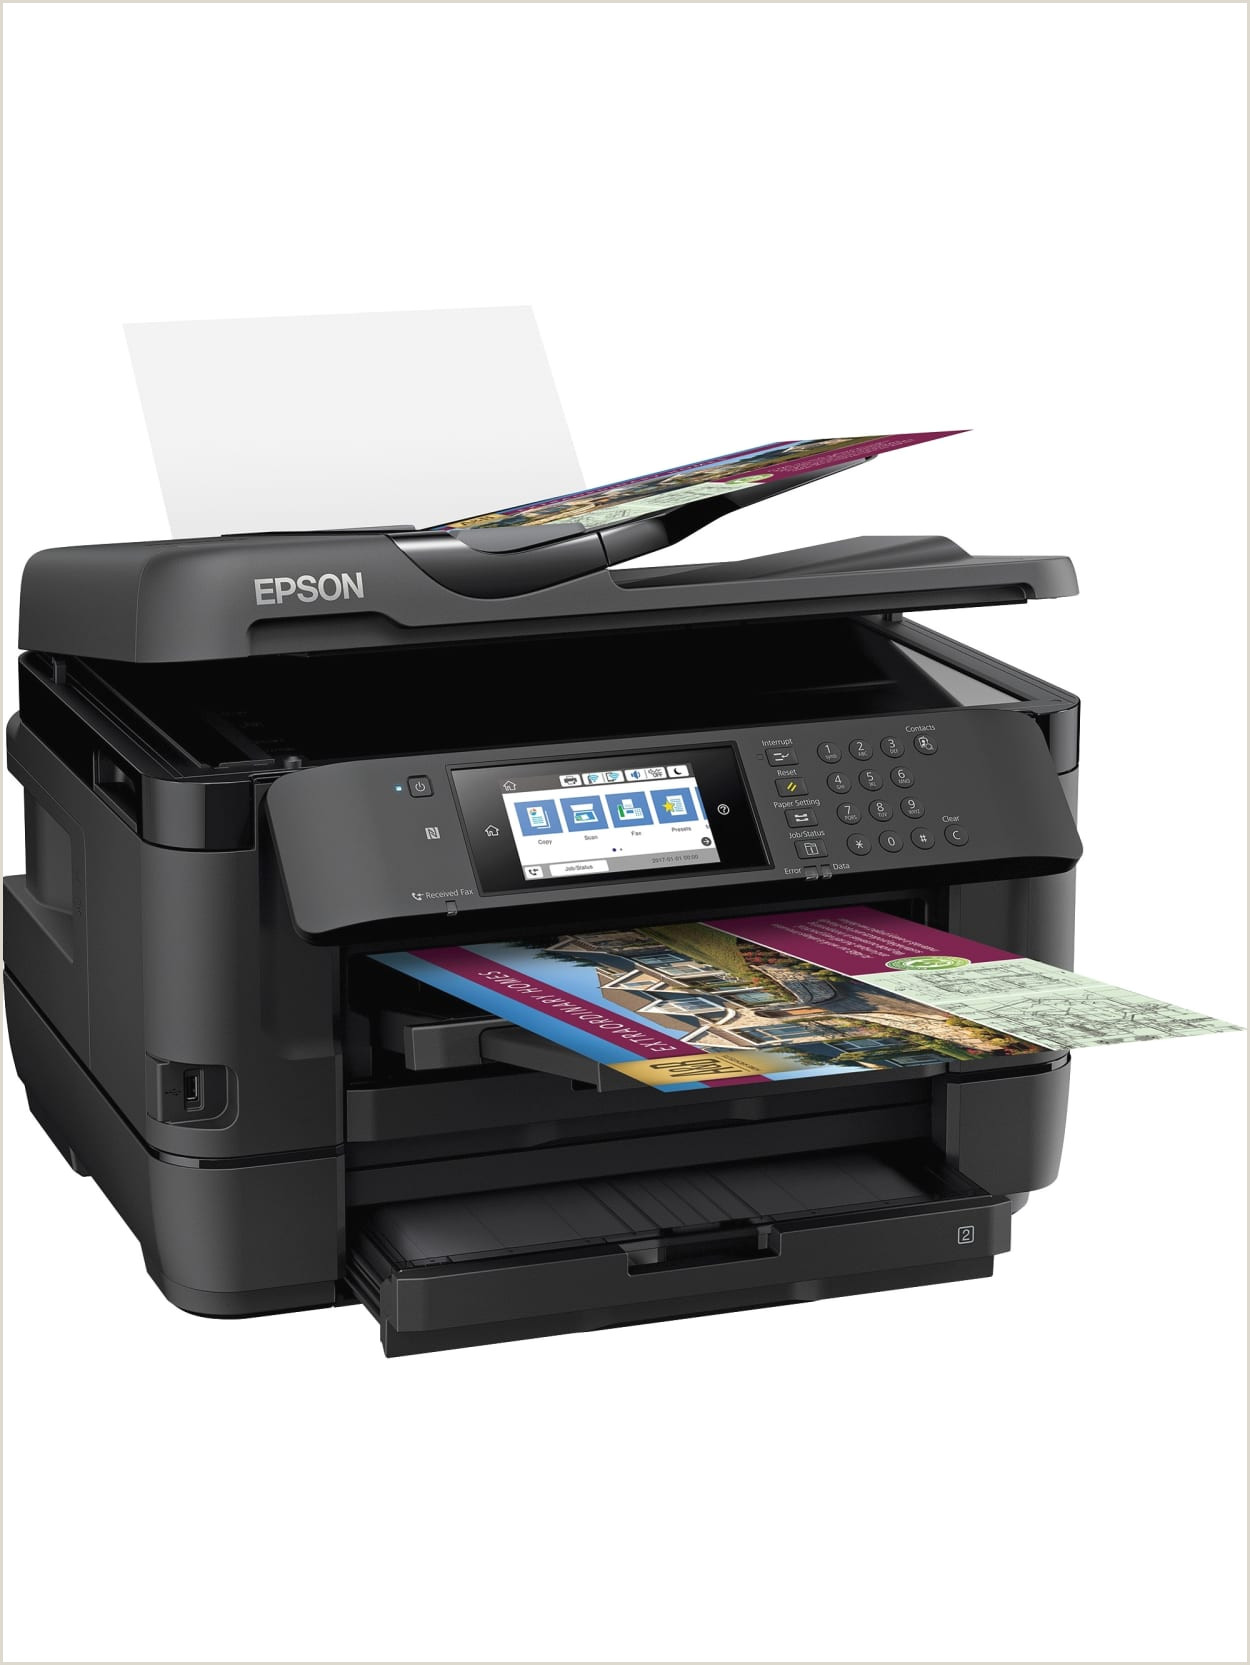 Printing Your Own Business Cards Epson Workforce Wf 7720 19 Wide Format Wireless Inkjet All